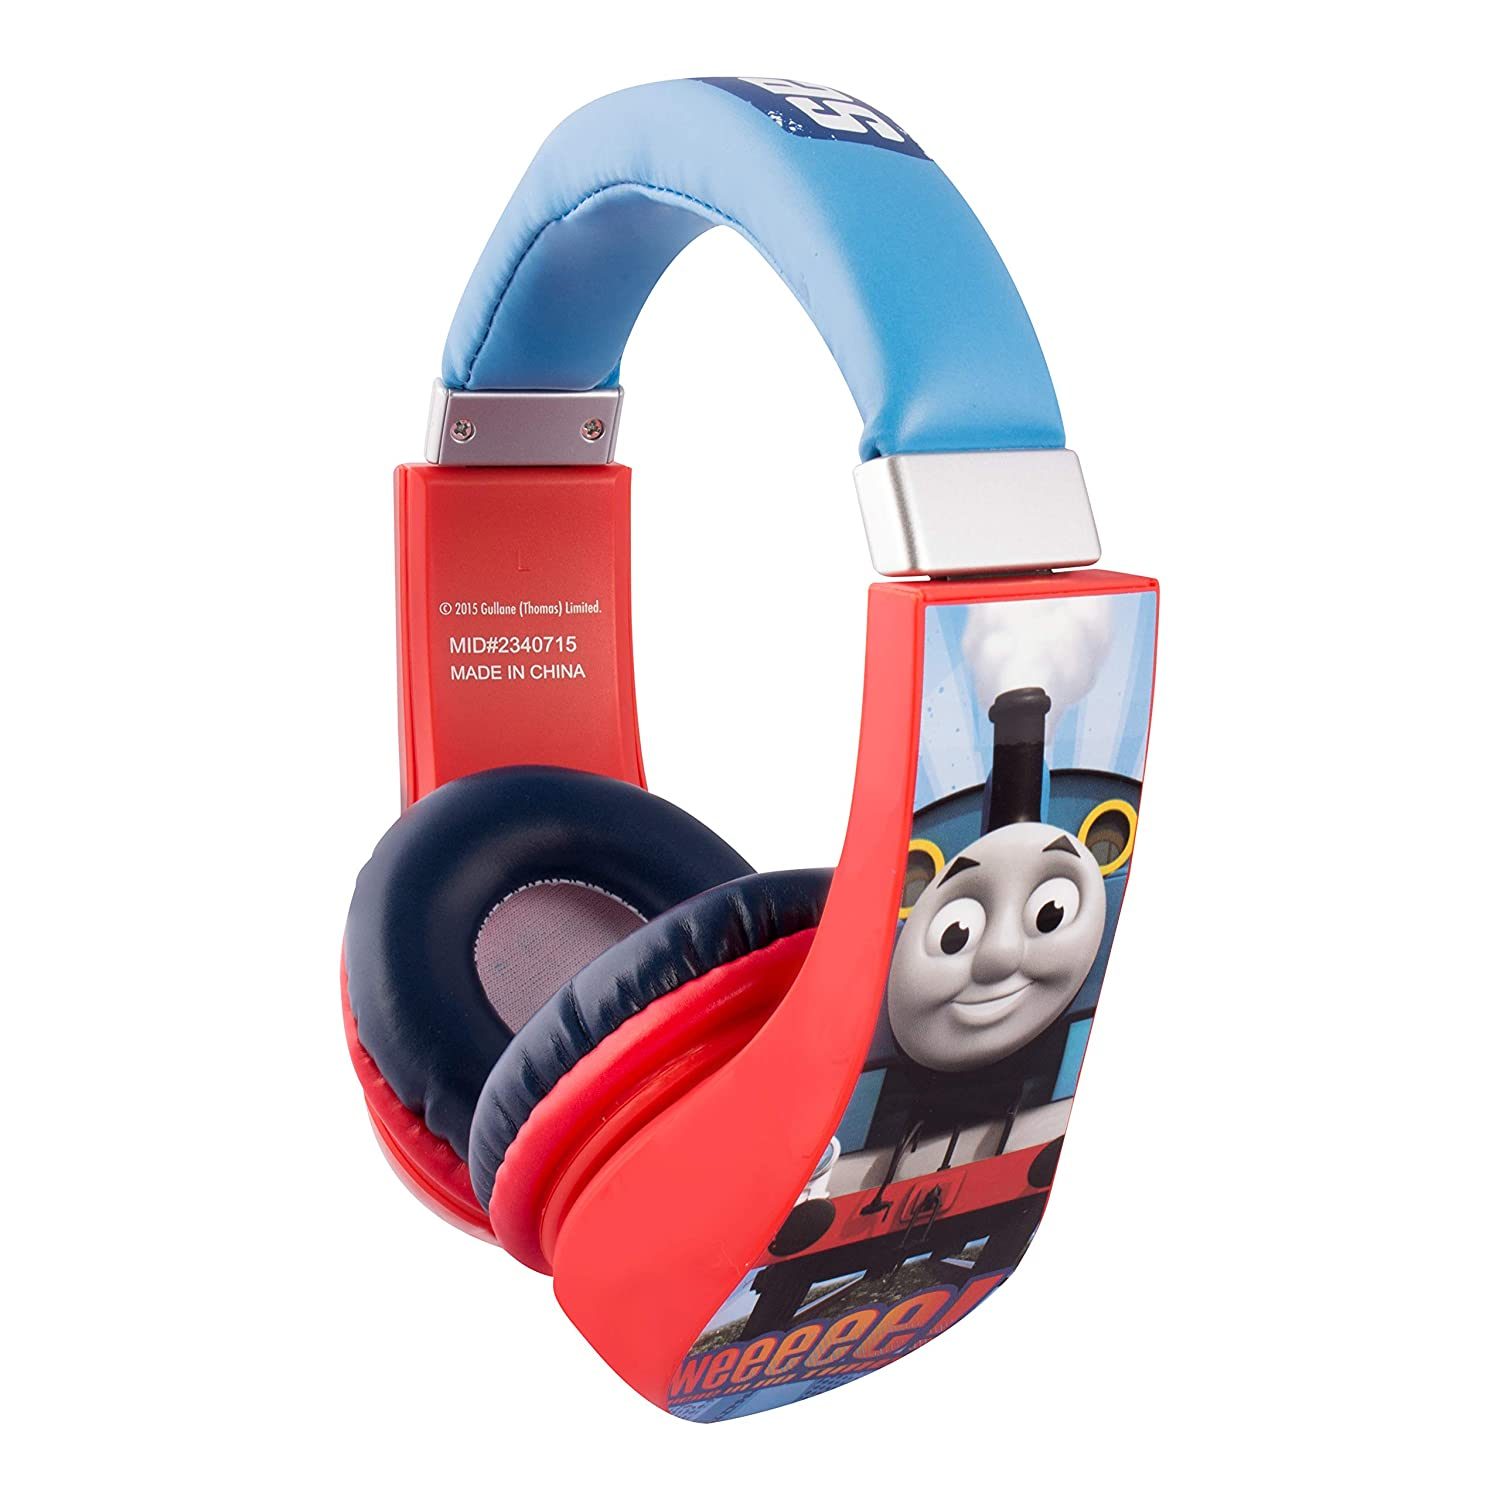 Thomas and Friends Cartoon Character Train 30385 Kid Safe Over The Ear Headphone with Volume Limiter, Clear Bass, Warm Highs and Lows, 3.5mm Stereo Jack, Blue, Red & White